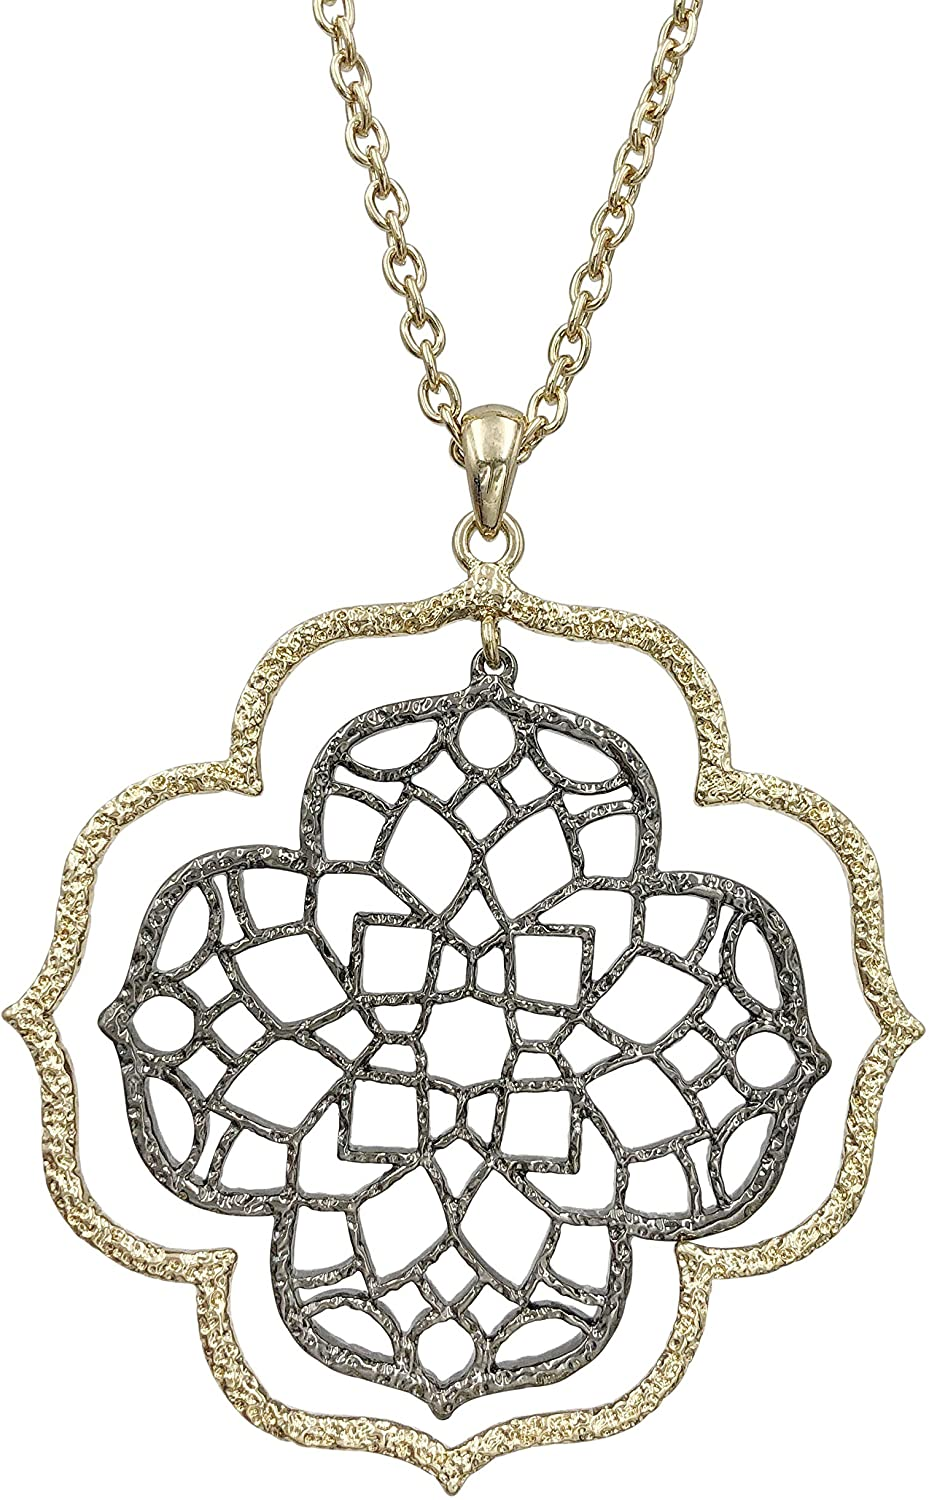 Long Filigree Swirl Large Pendant Outline 2-Tone Mixed Metal Chain Necklace